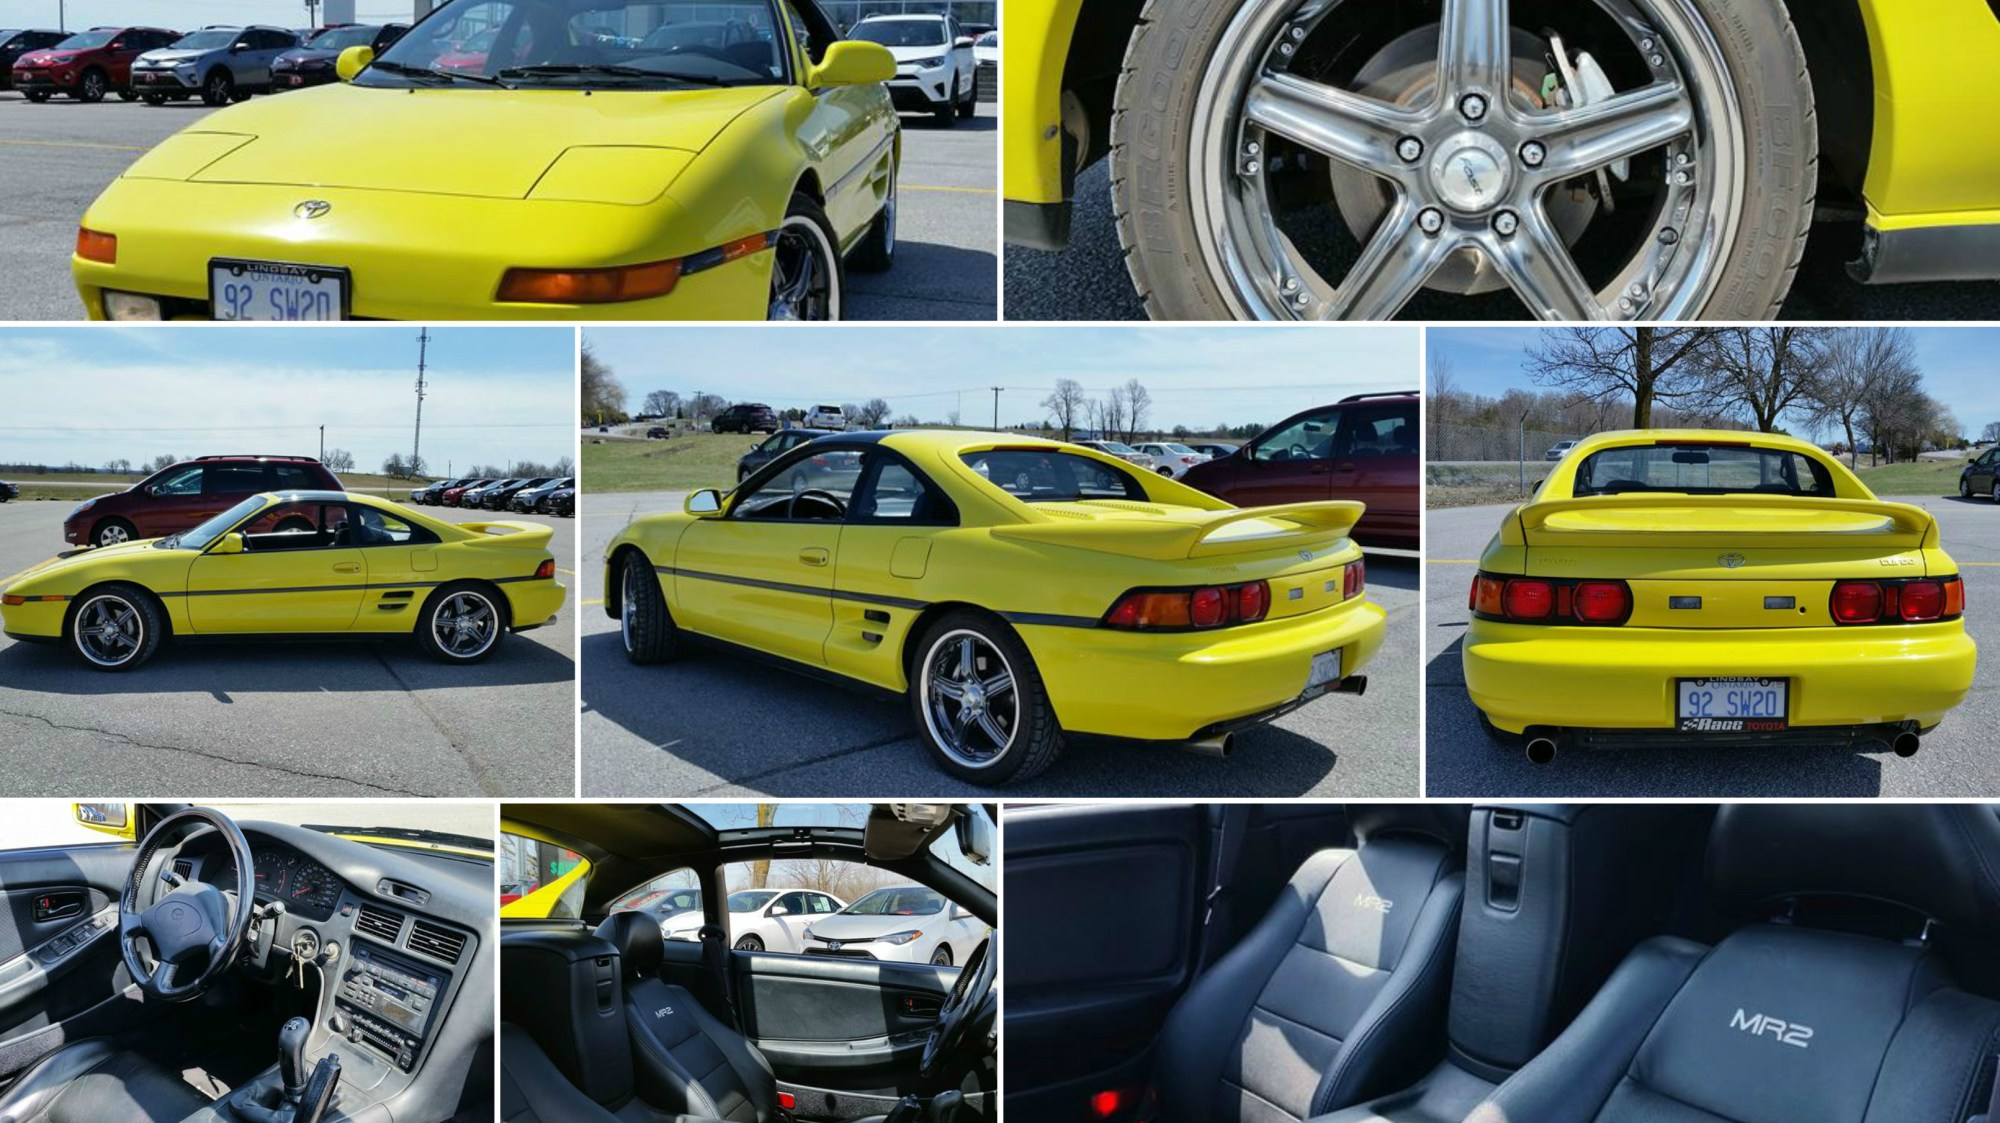 hight resolution of toyota mr2